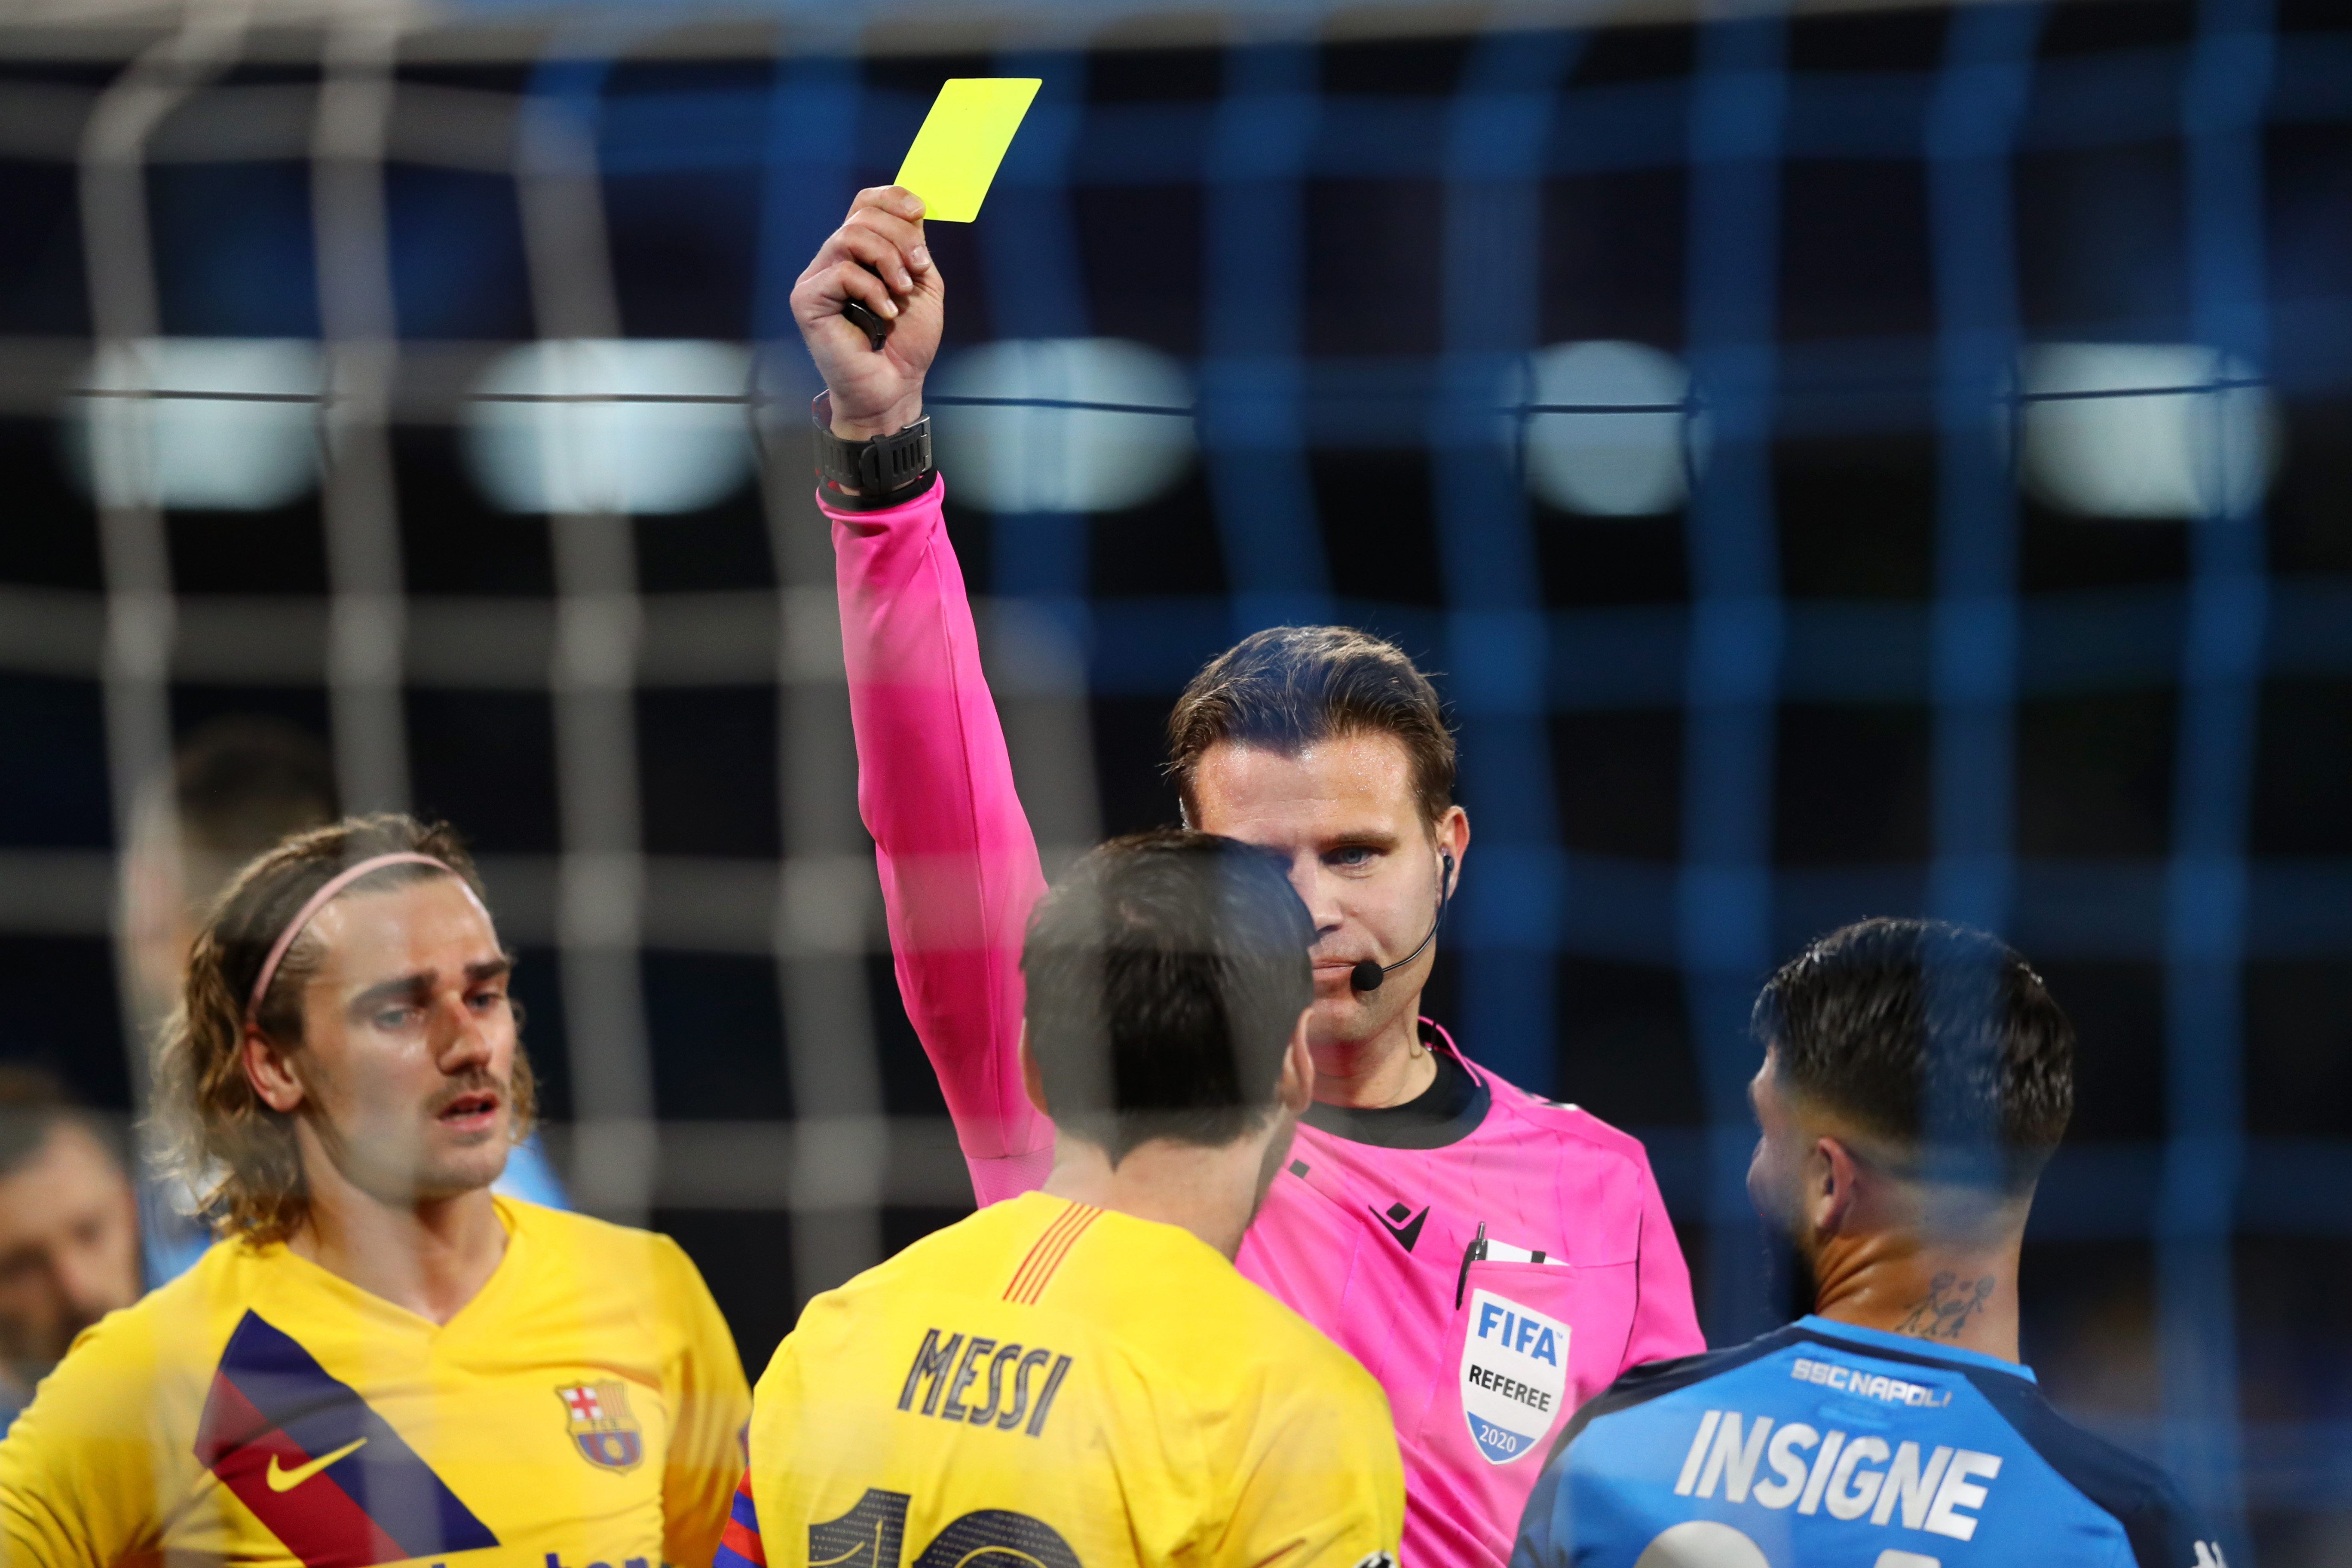 Lionel Messi received a yellow card for a foul on David Ospina.